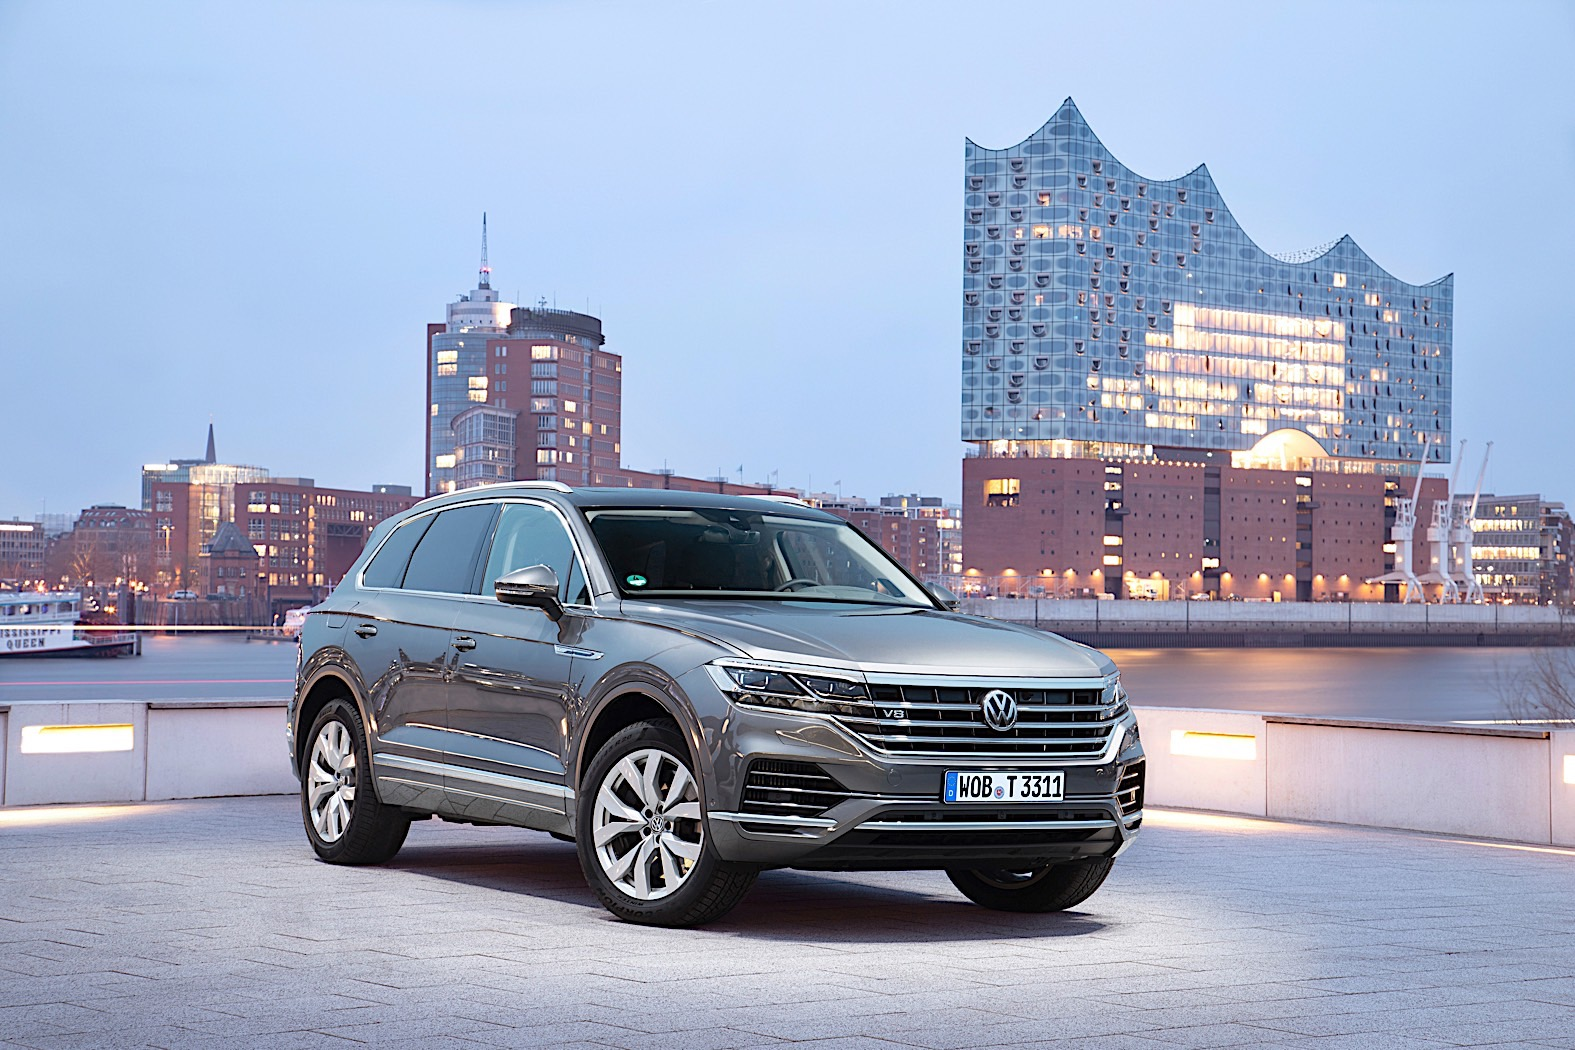 2021 VW Touareg – Hybrid and R Model Rumors